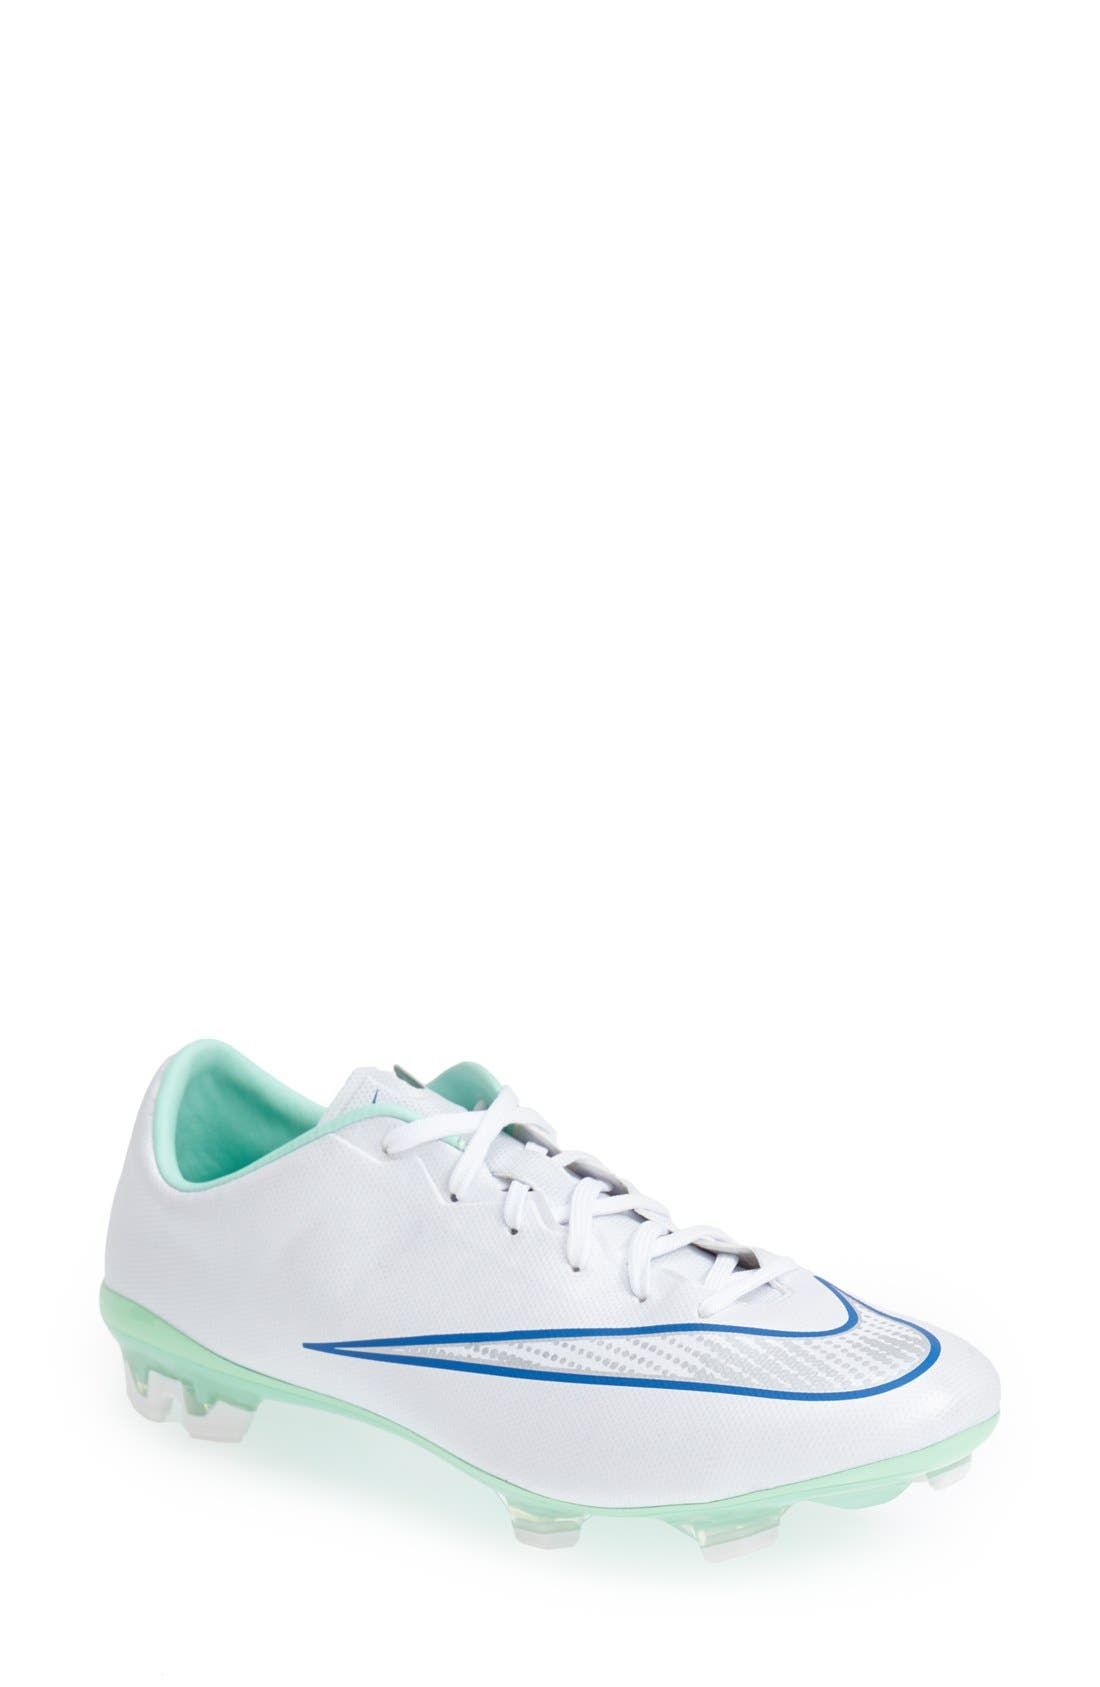 Alternate Image 1 Selected - Nike 'Mercurial Veloce 2' Firm Ground Soccer Cleat (Women)